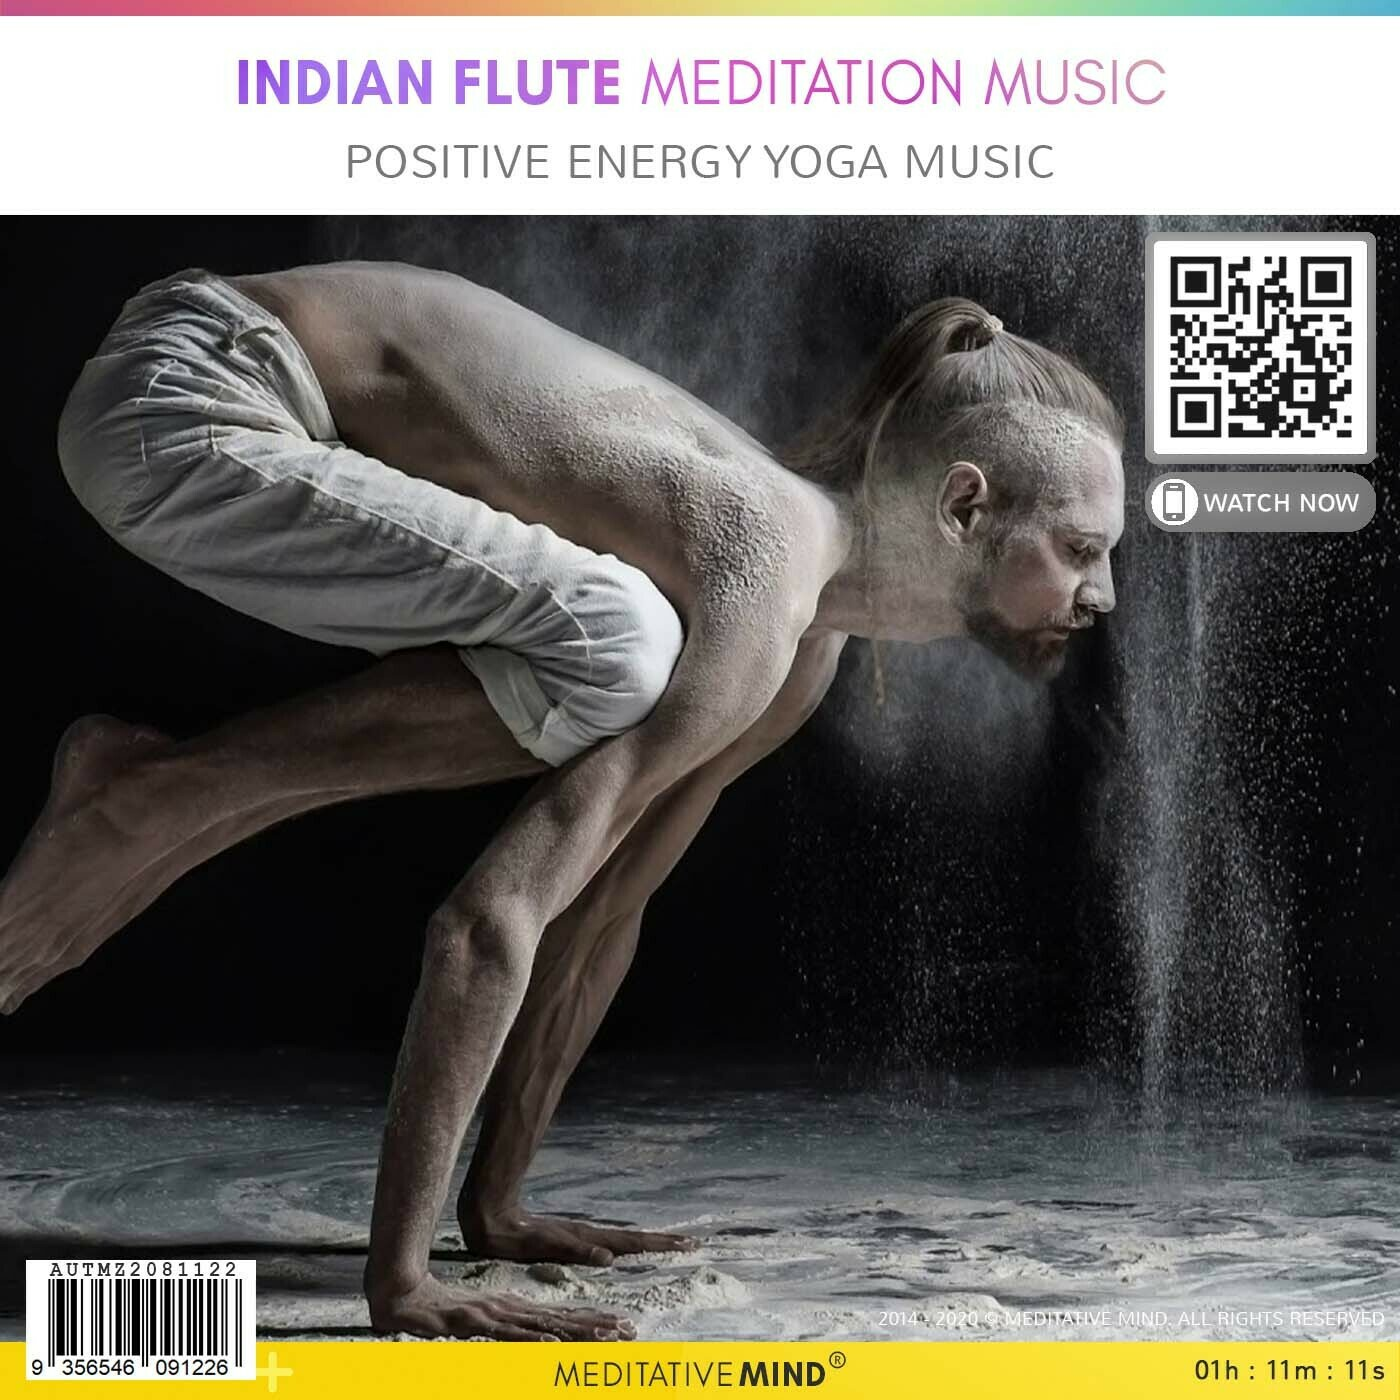 Indian Flute Meditation Music Positive Energy Yoga Music Meditative Mind S Official Music Store Meditative Mind